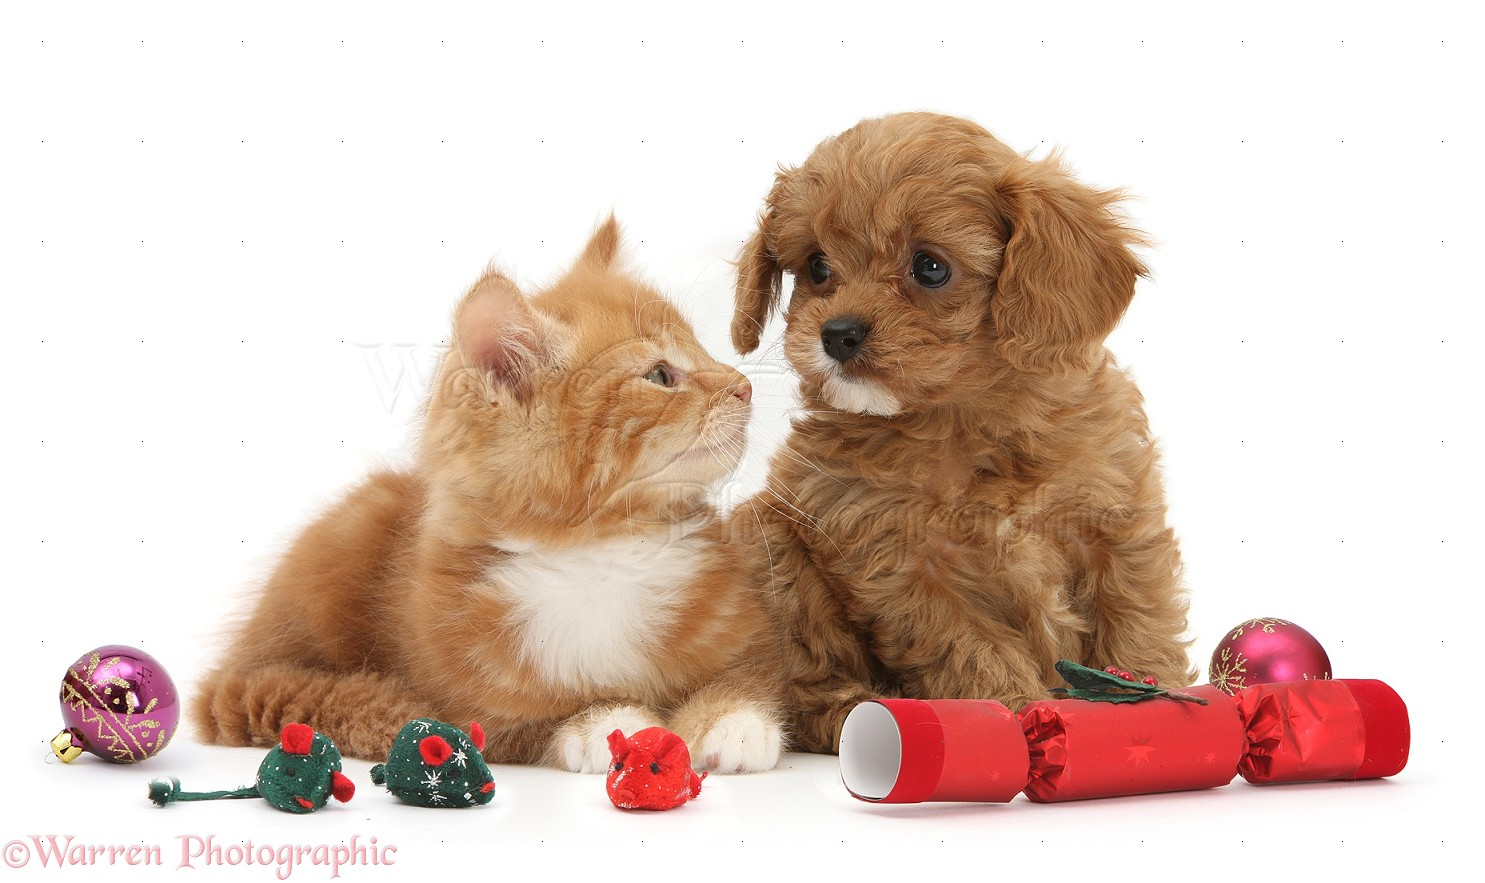 Displaying 15 gt images for cute christmas puppies and kittens